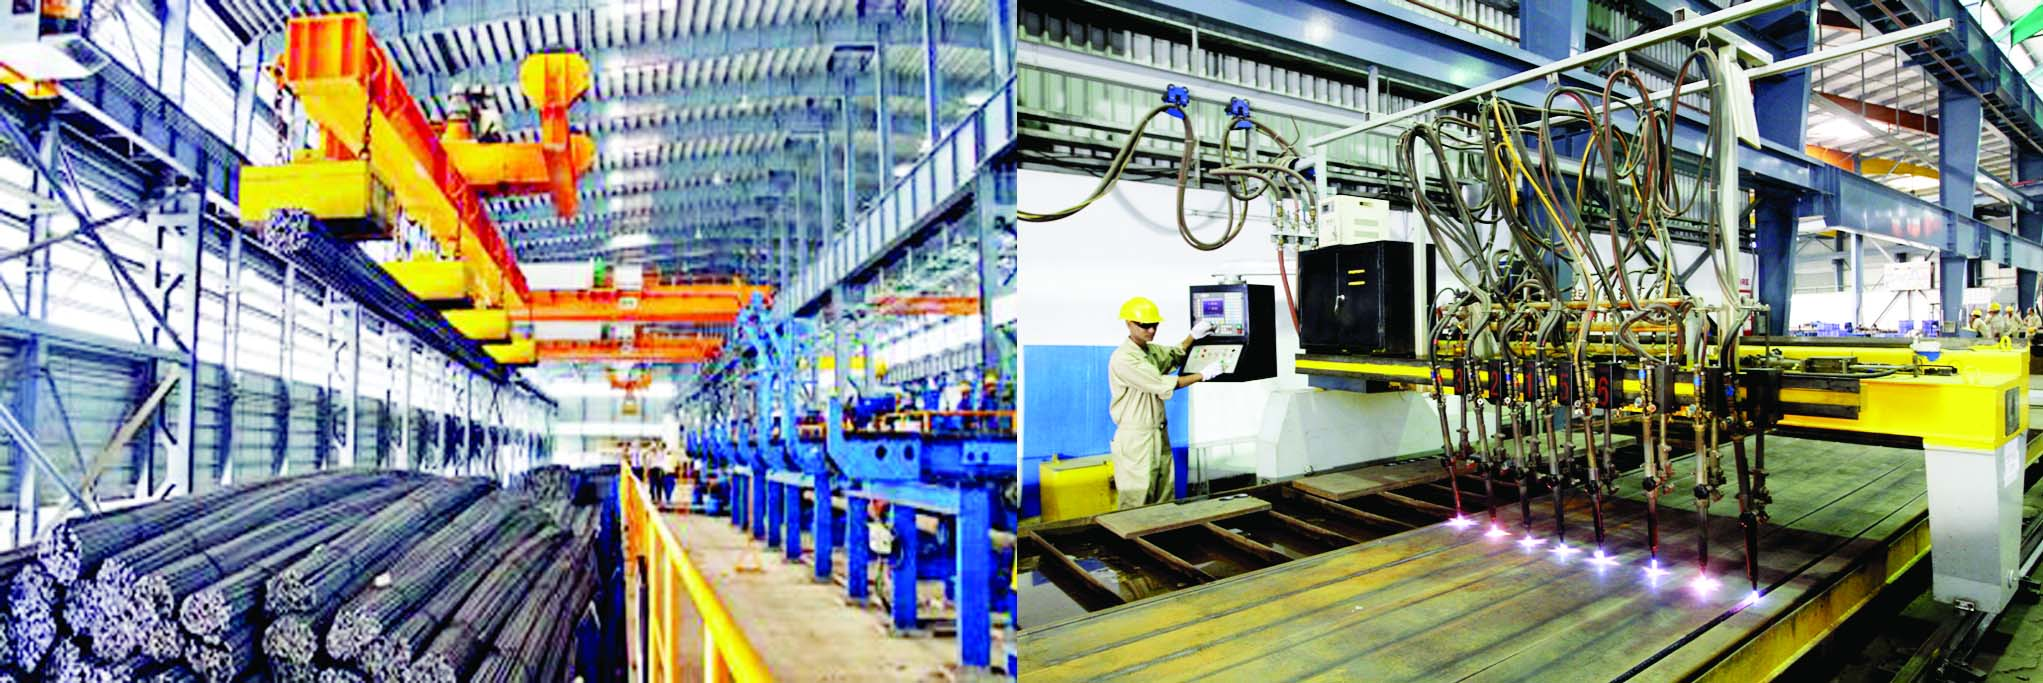 steel industry in bangladesh kycr coil industries Chittagong cement mills ltdhiltzin kycr coil industries limited, chittagong , shah cement ind ltd is the largest and local owned cement, kabir steel re rolling the japanese steel industry in the global steel the japanese steel industry.